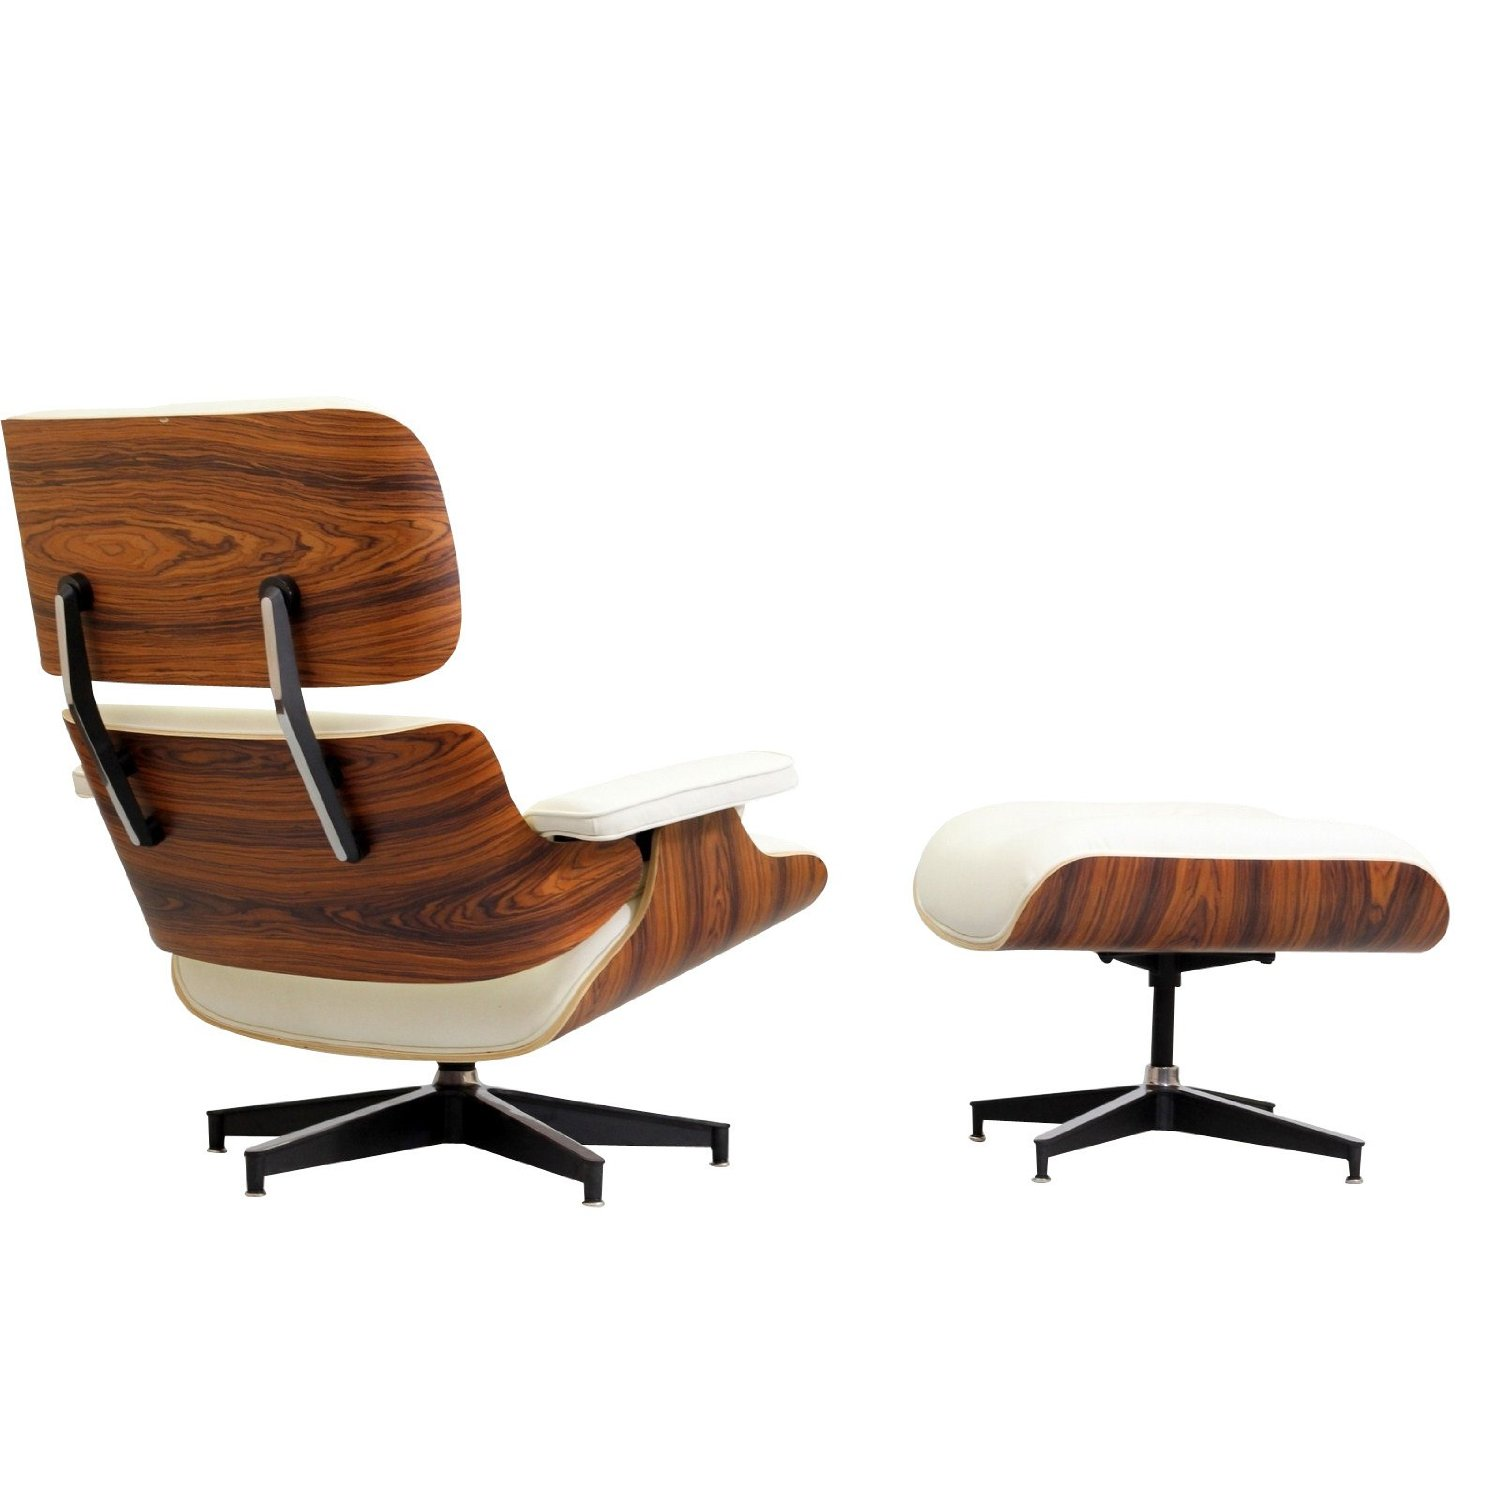 Eames Lounge Chair And Ottoman White Italian Leather Cross Grain Wood L